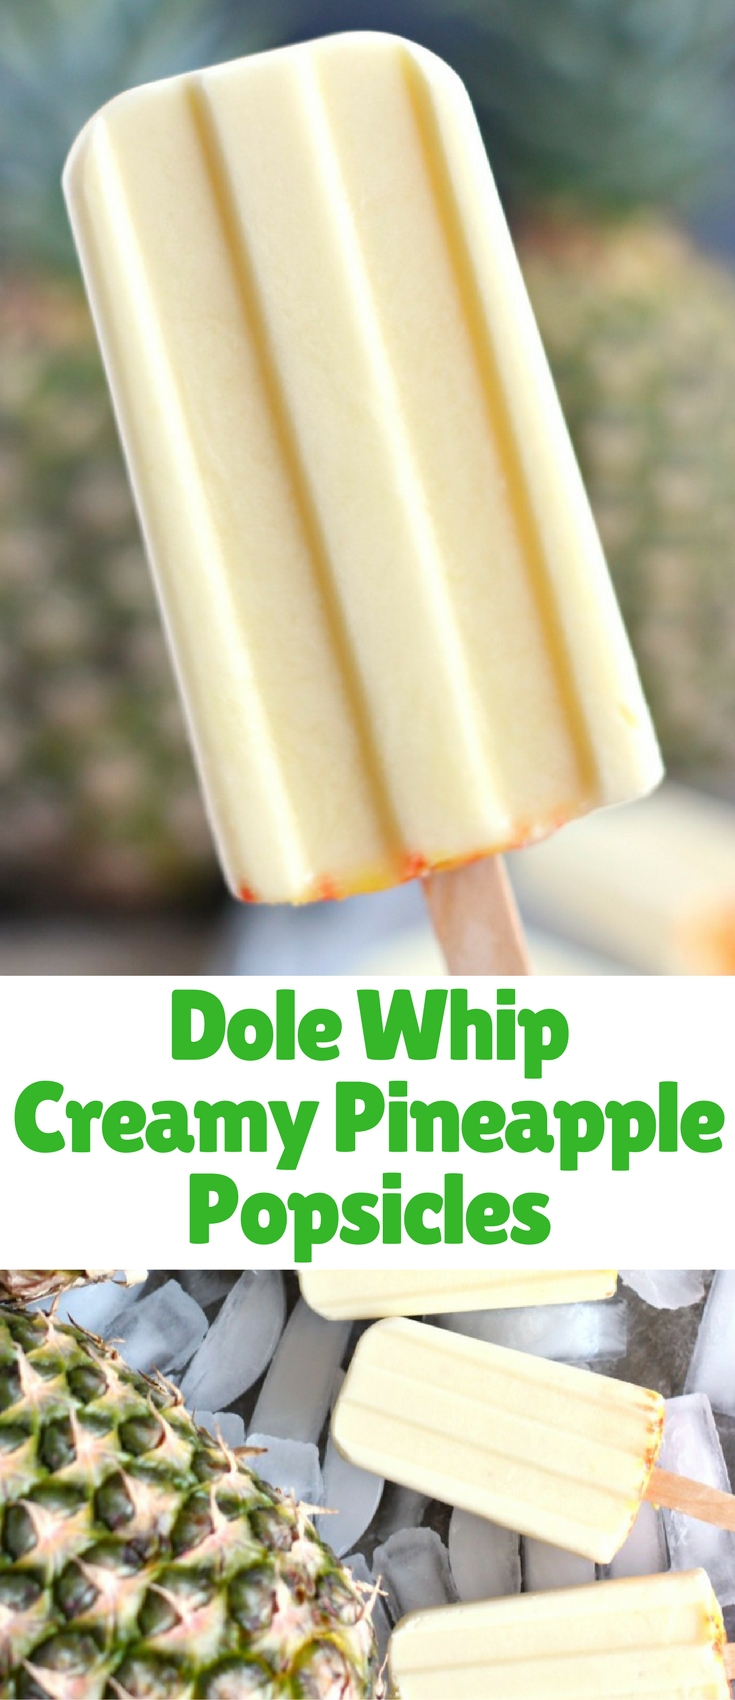 Our Dole Whip Creamy Pineapple Popsicles Recipe is inspired by the delicious Dole Whip soft serve available at the Magic Kingdom Walt Disney World. You're going to love this cool treat!